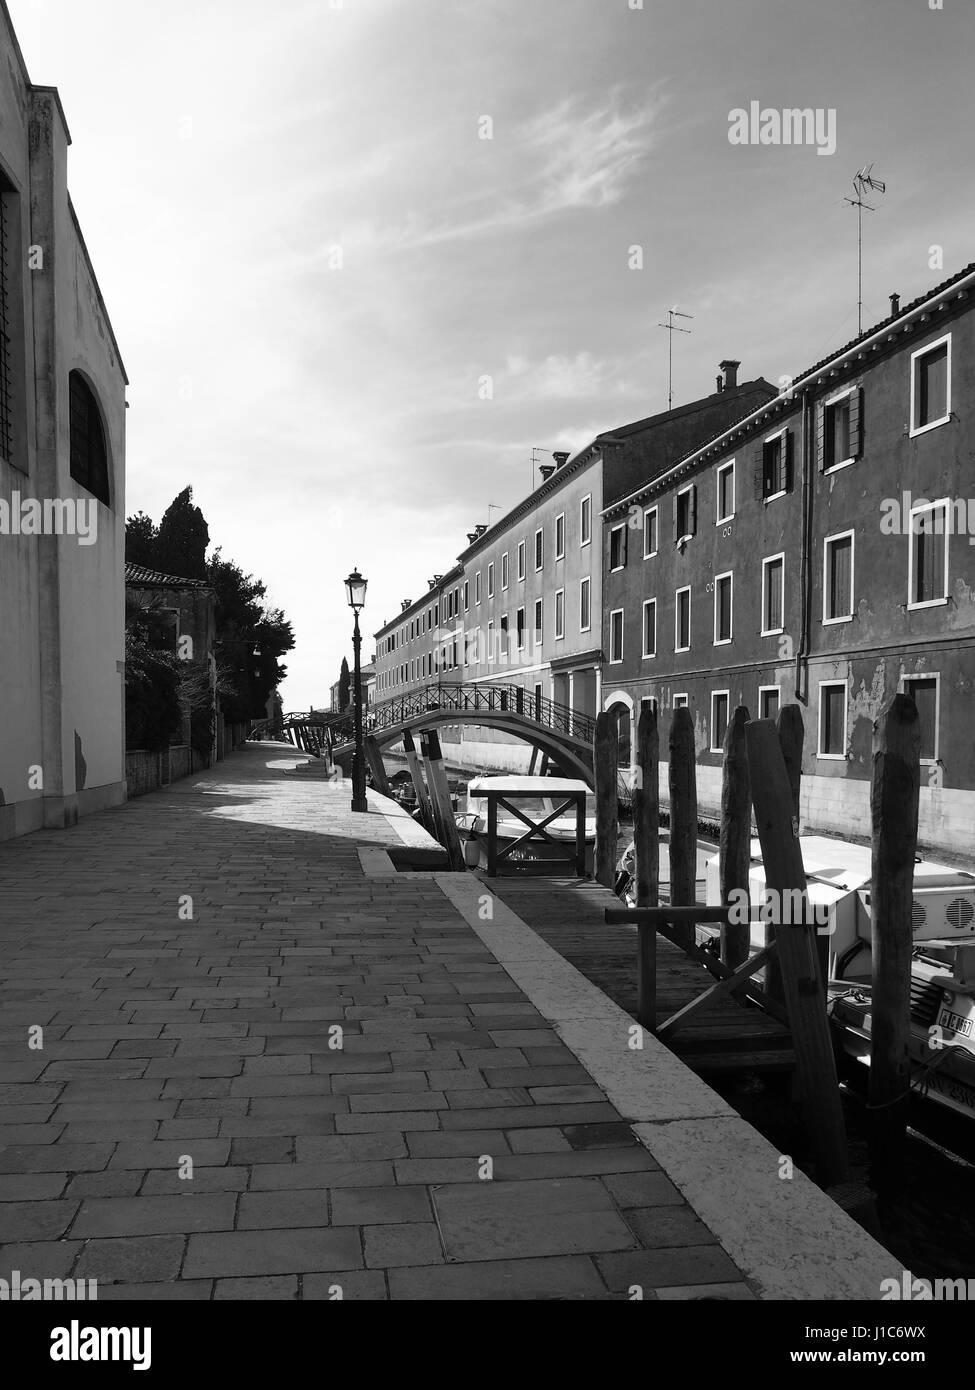 canal path with pavement lamp post and boats in guidecca in venice - Stock Image